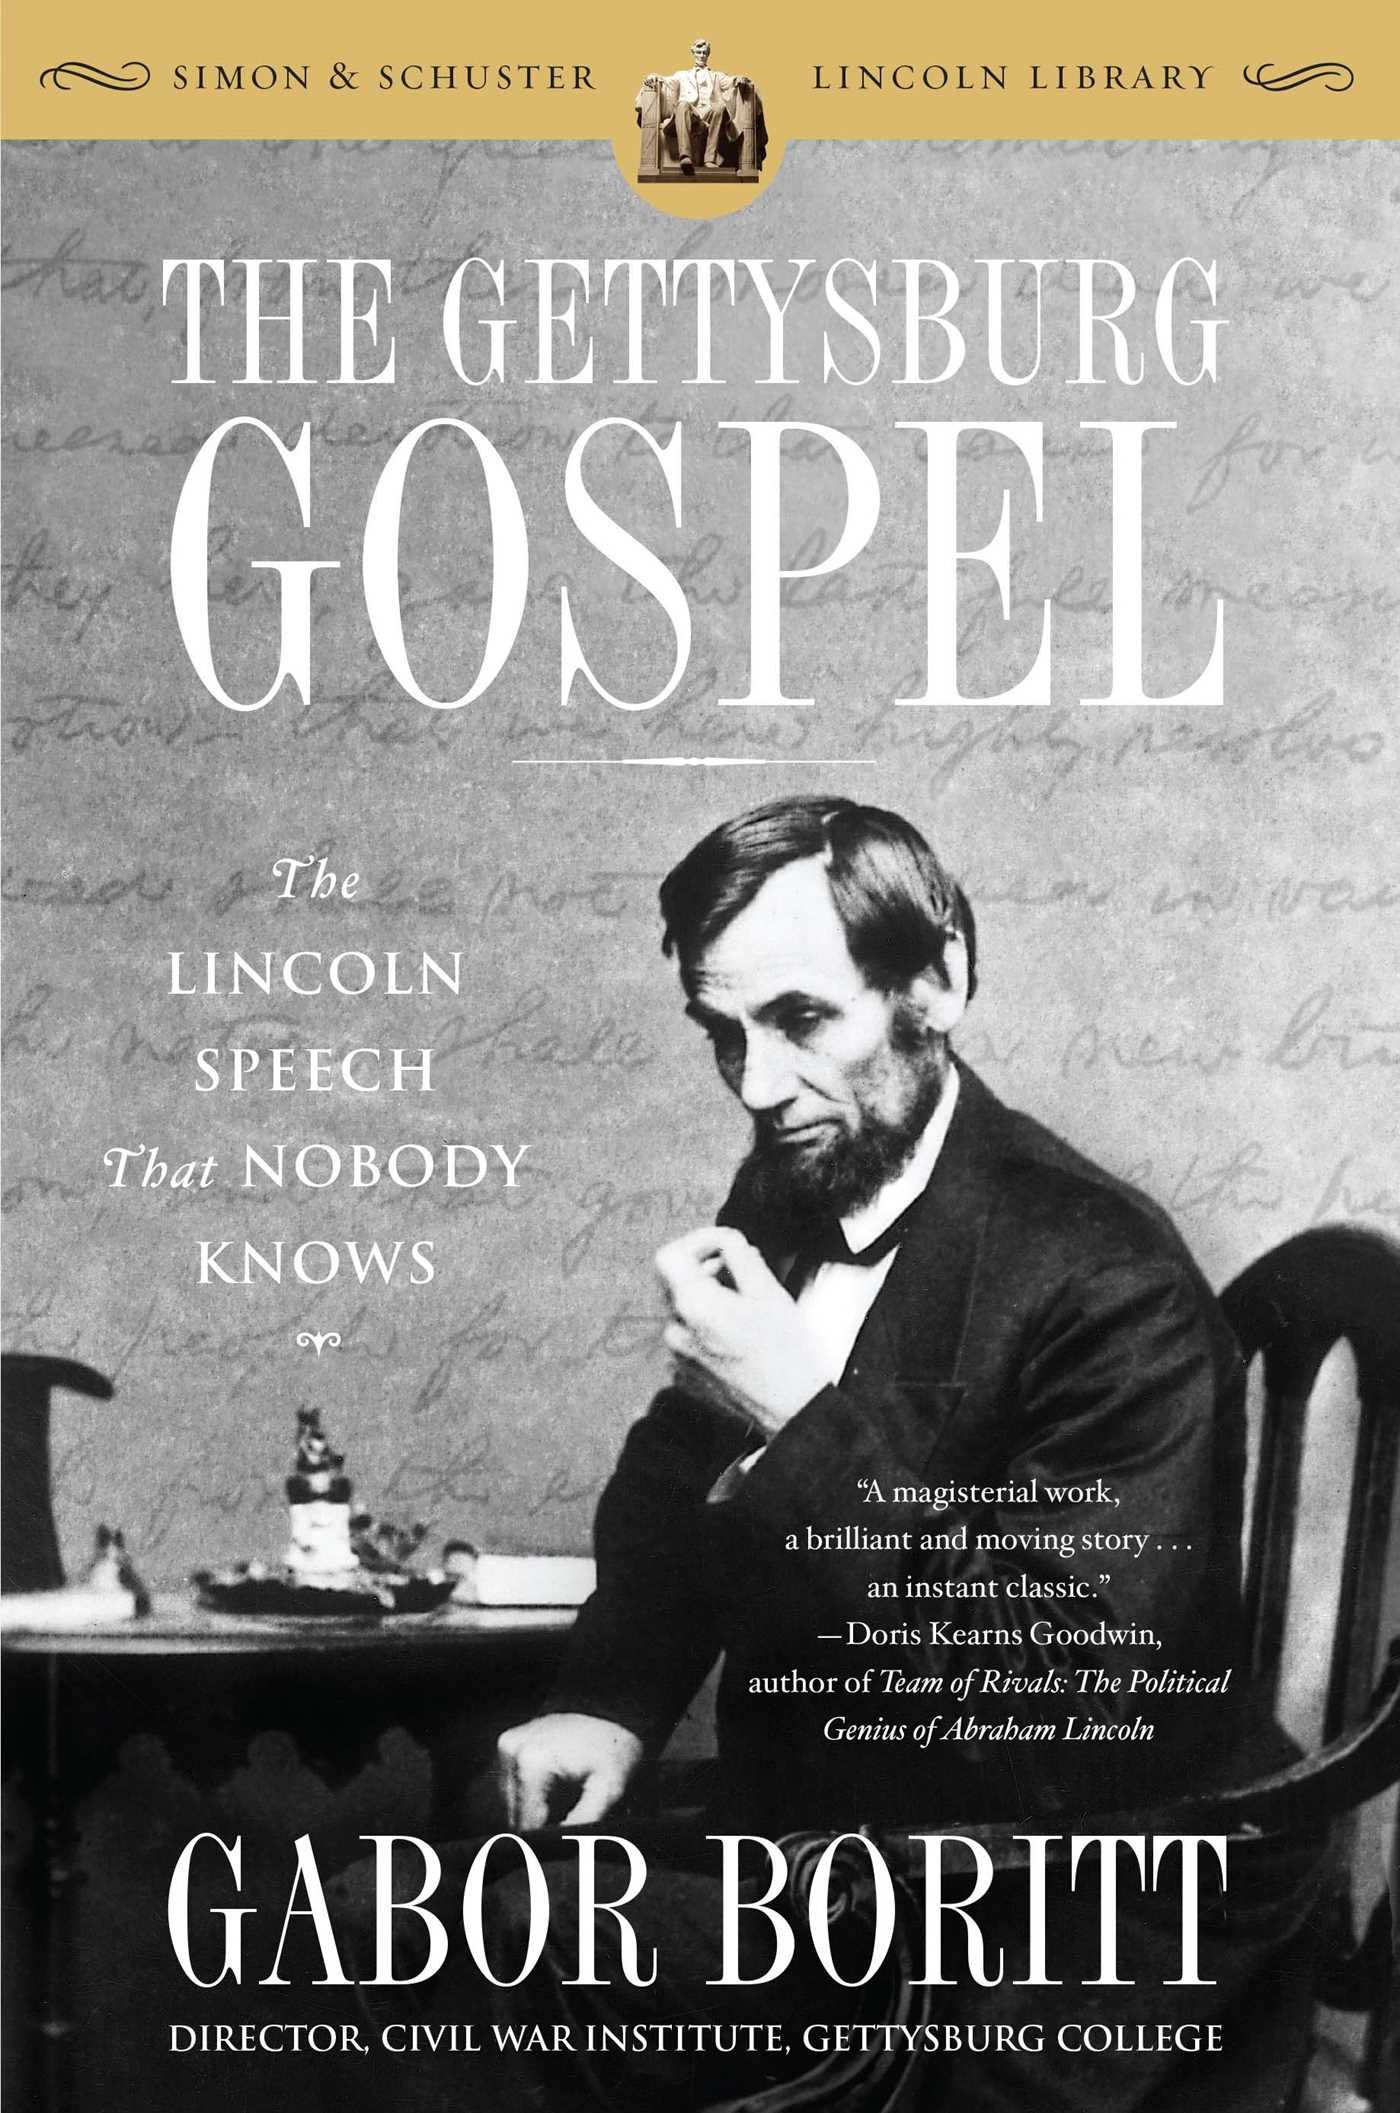 The Gettysburg Gospel: The Lincoln Speech That Nobody Knows (Simon & Schuster Lincoln Library) pdf